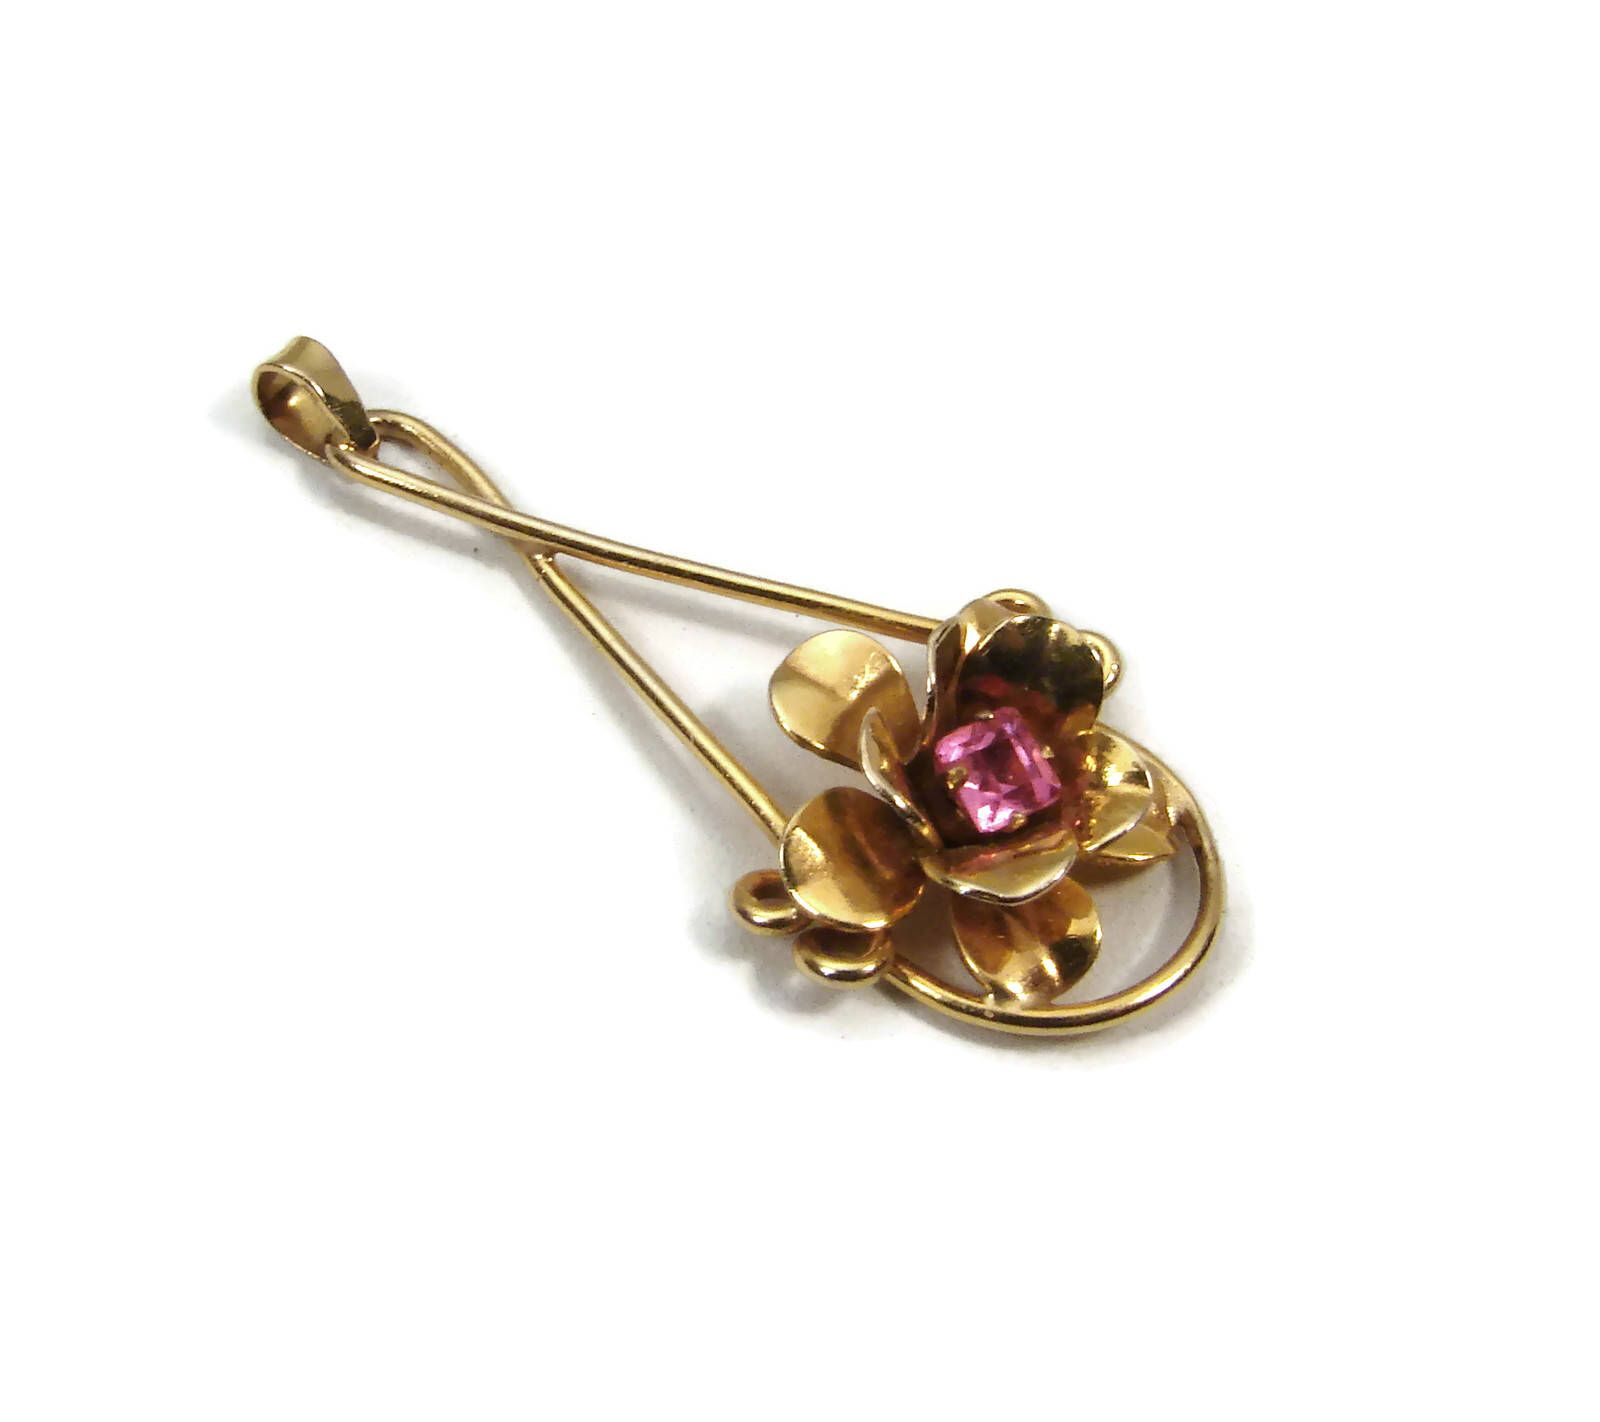 Vintage 10K Gold Flower Pendant Simulated Ruby 1940s Jewelry